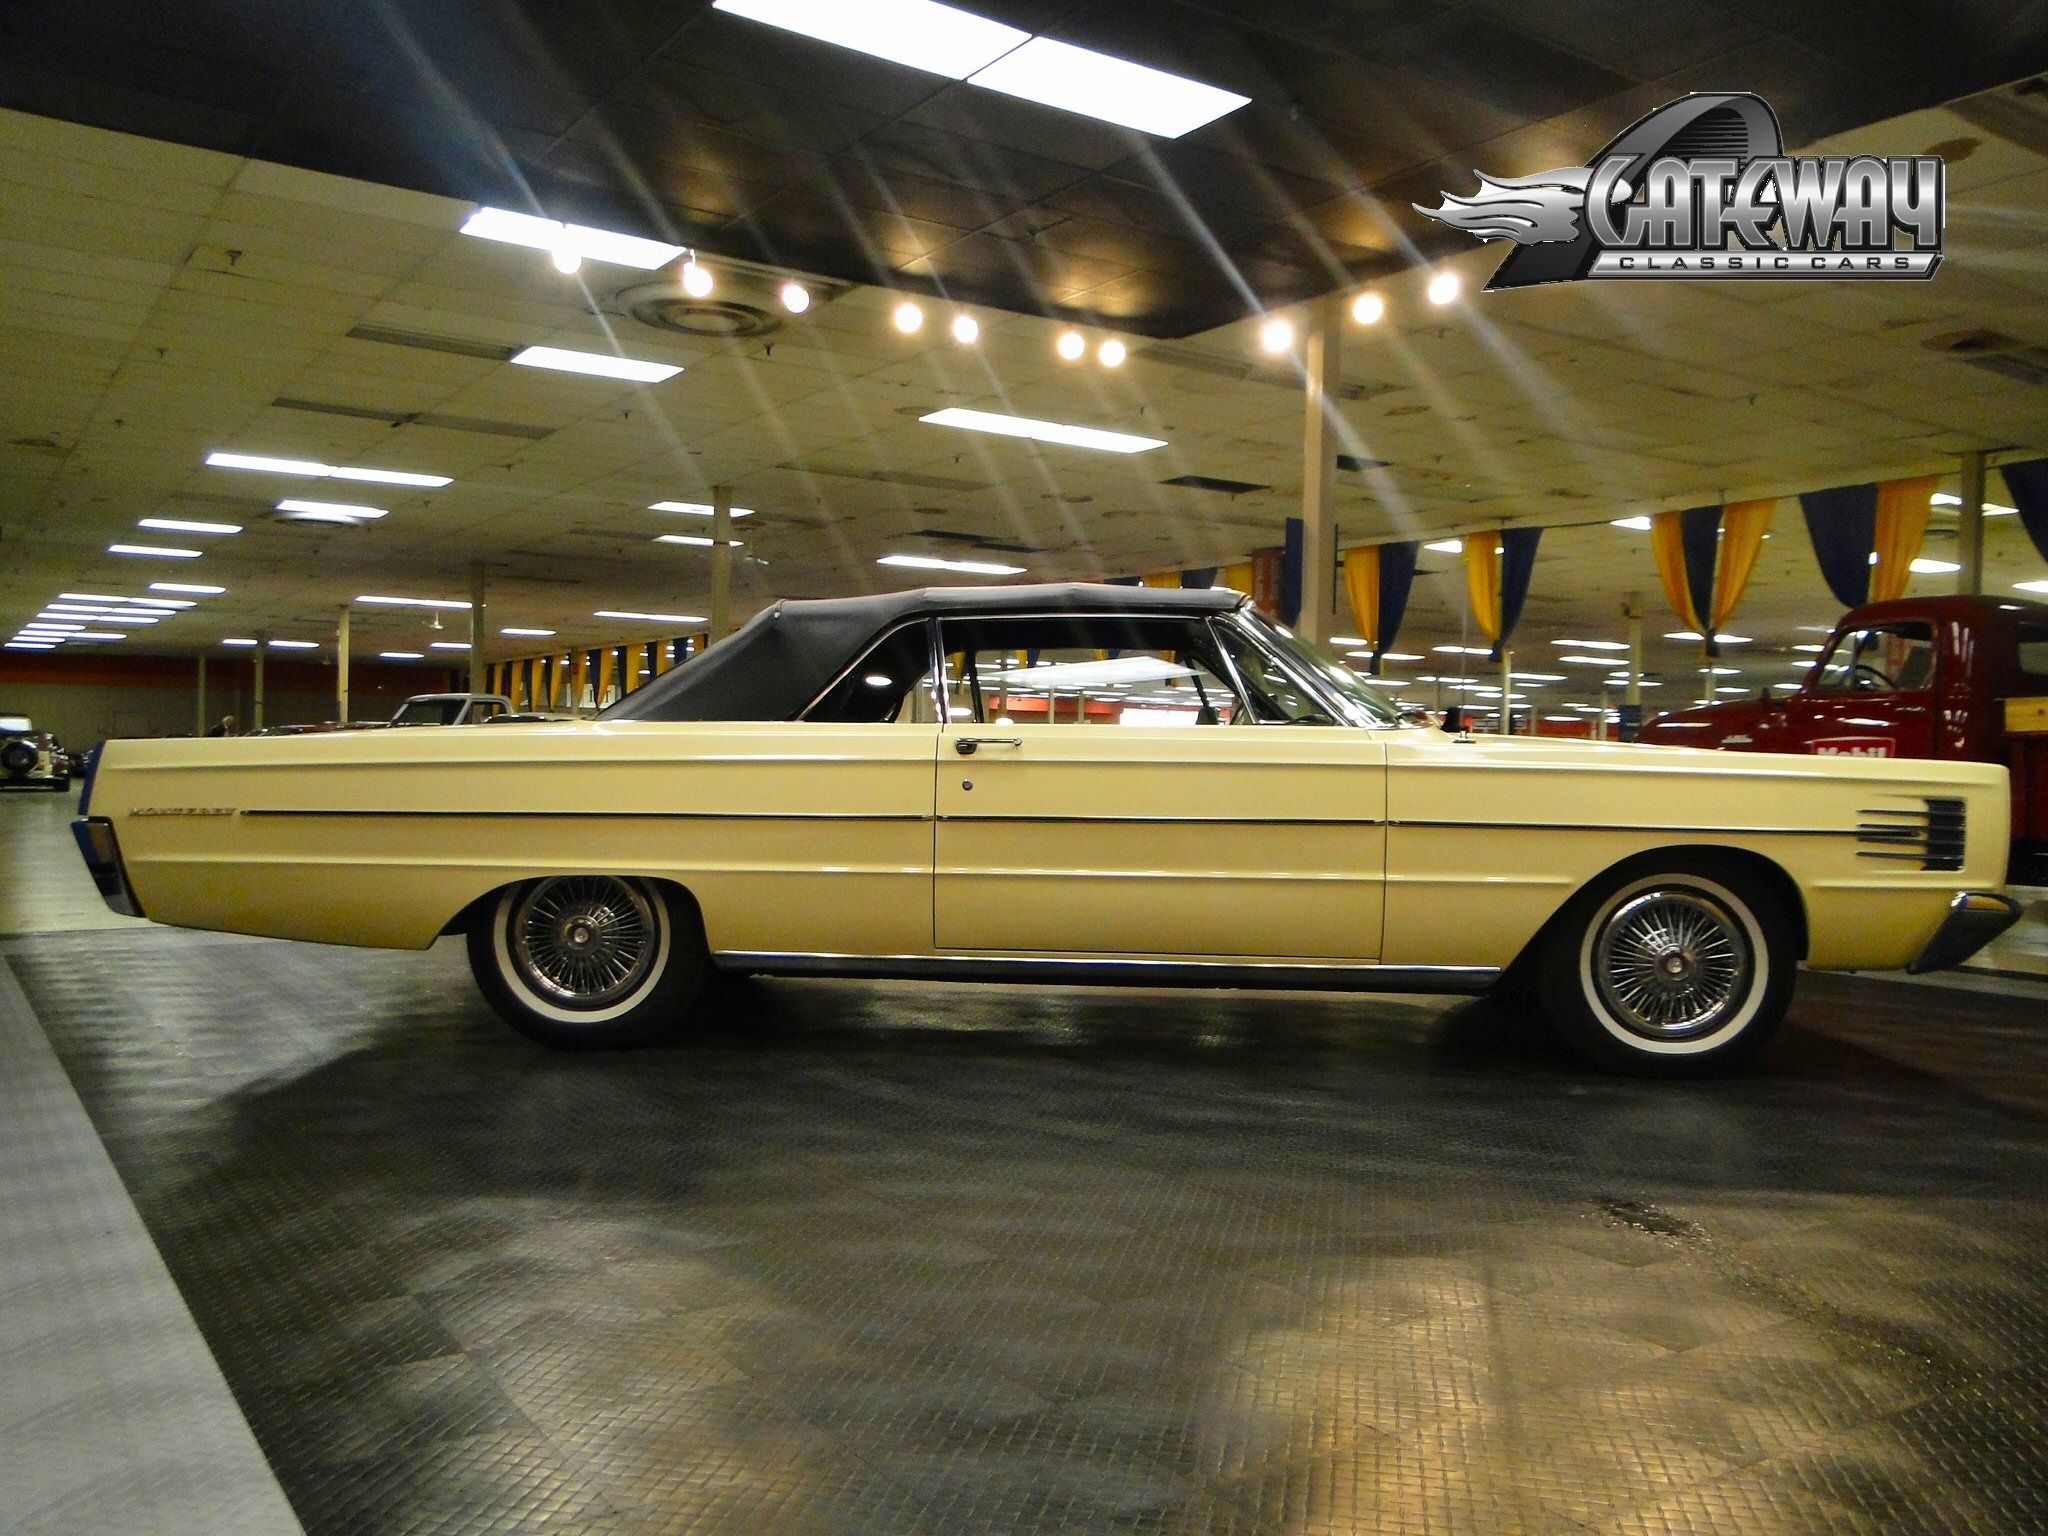 1972 mercury montego n code 429 restomod motorcycle custom - 1965 Mercury Monterey Convertible For Sale Gateway Classic Cars